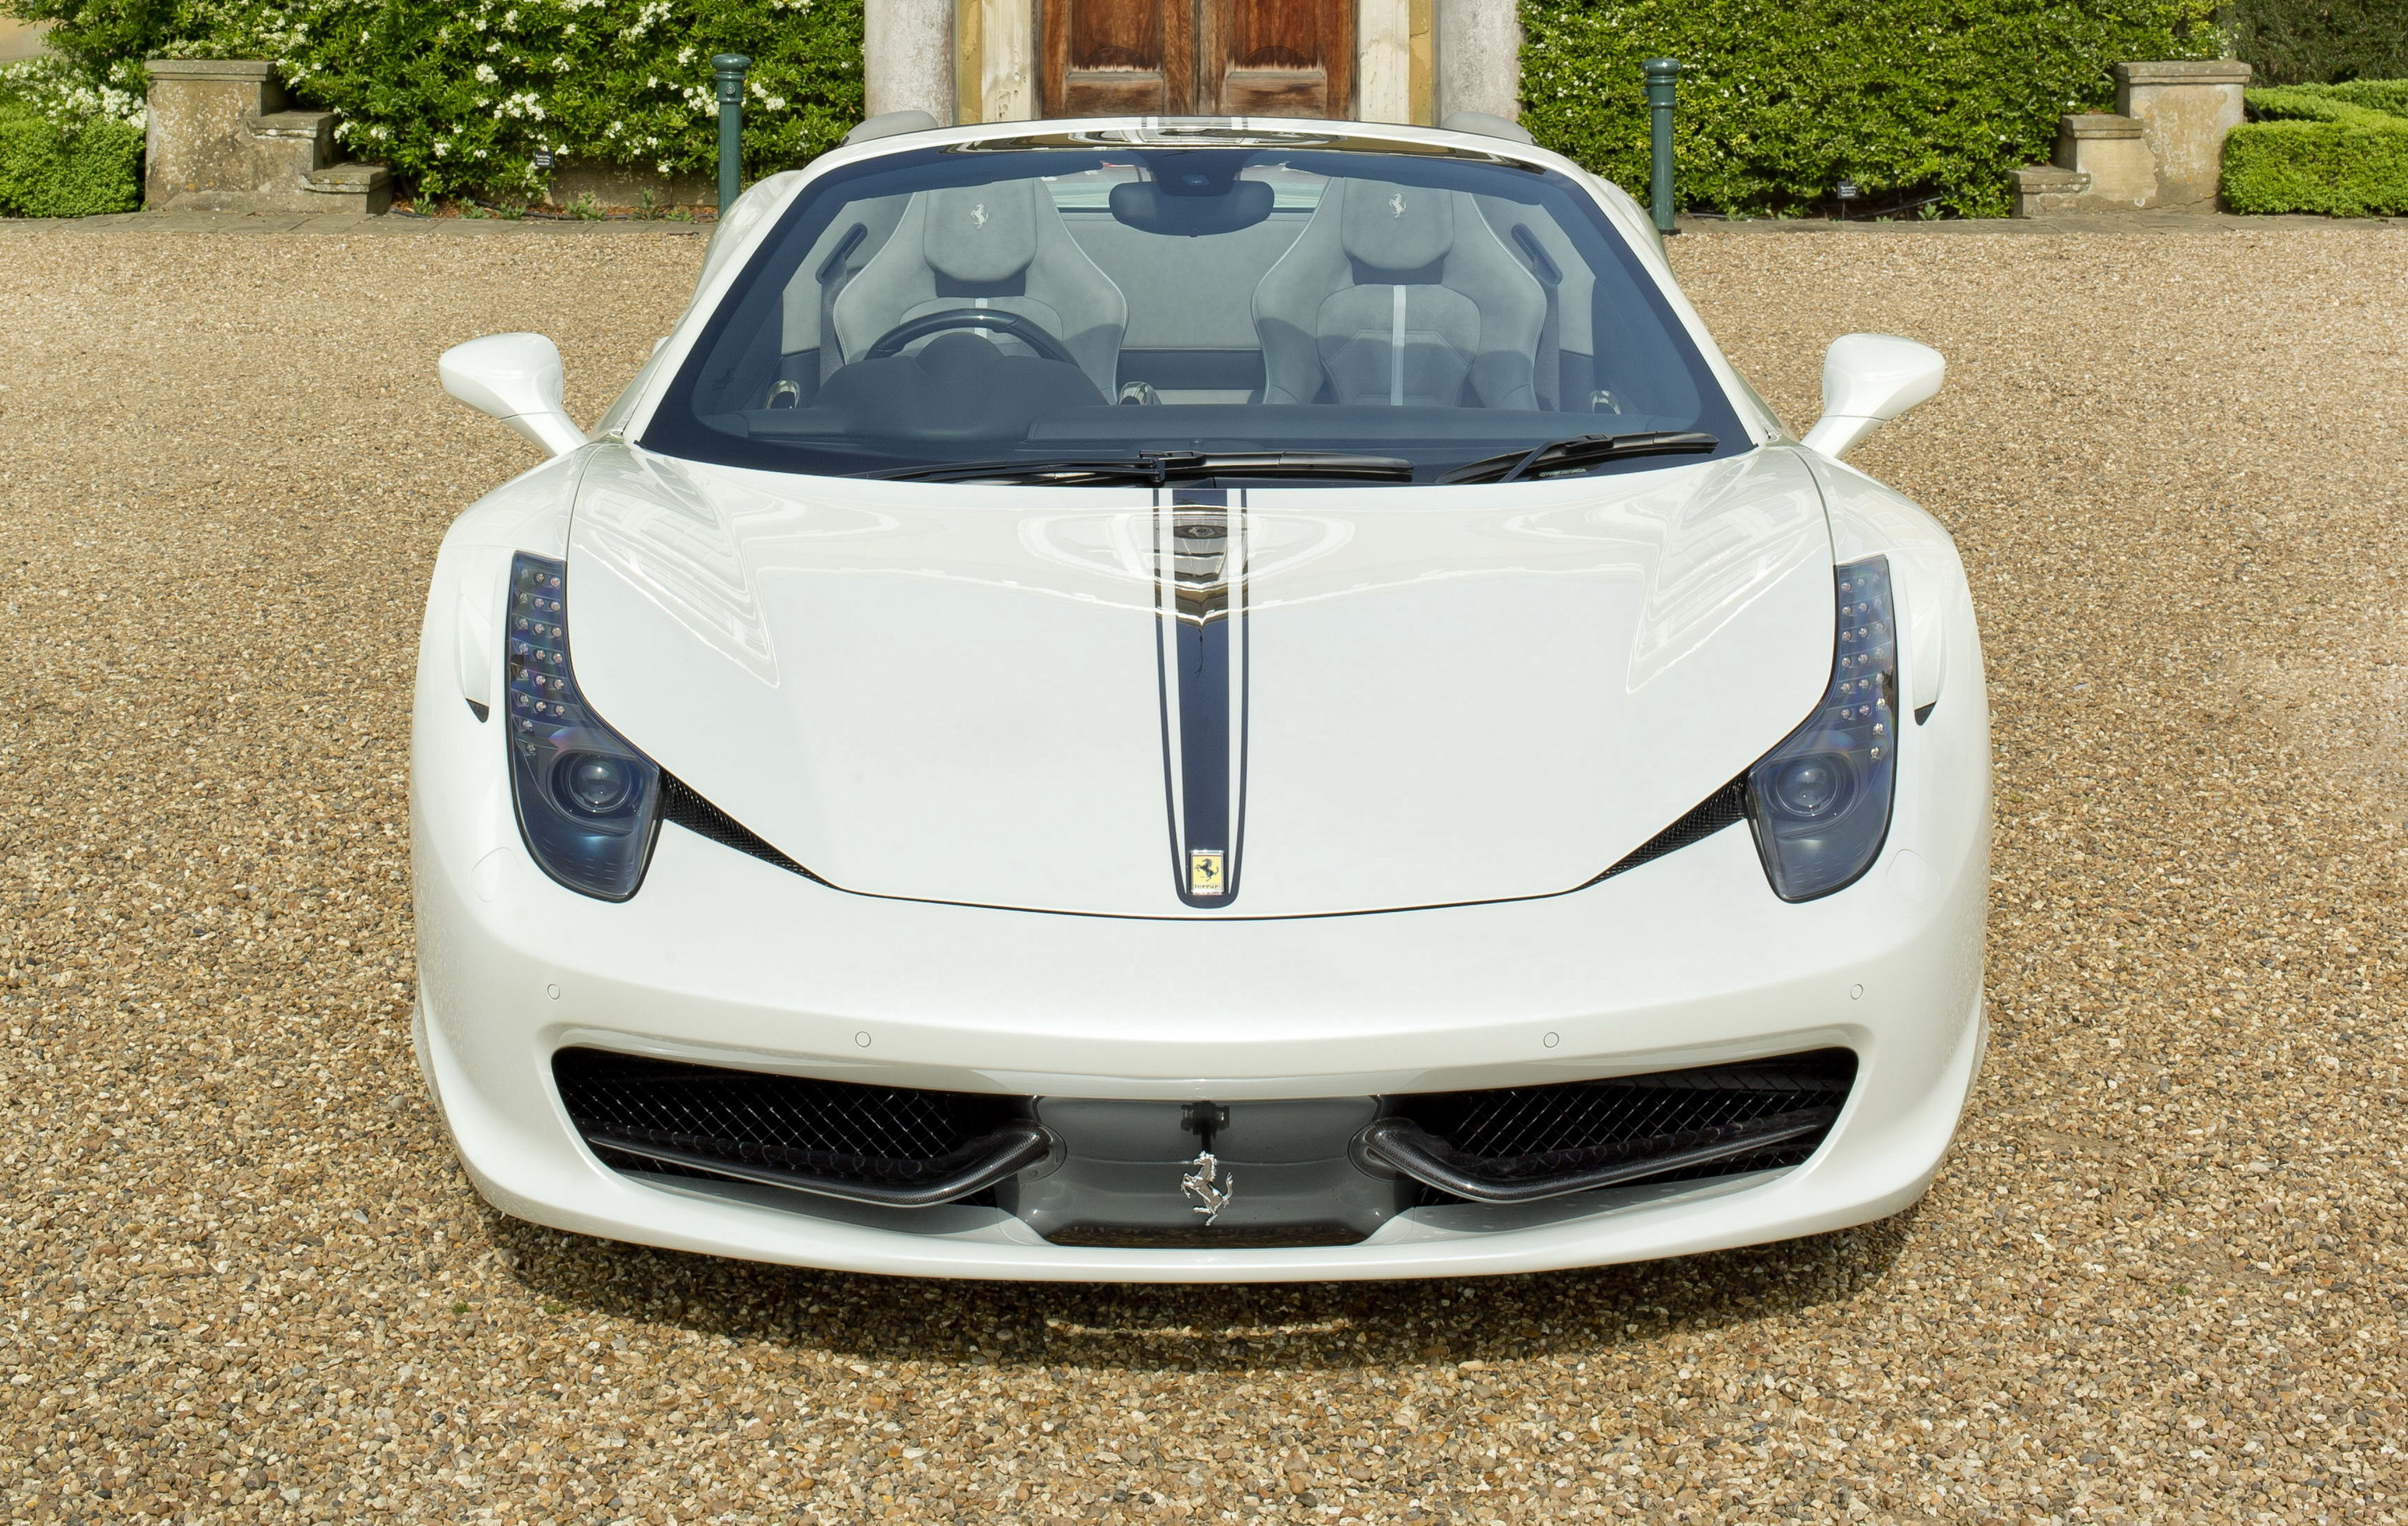 2014 Ferrari 458 Spider By Ferrari S Tailor Made Program